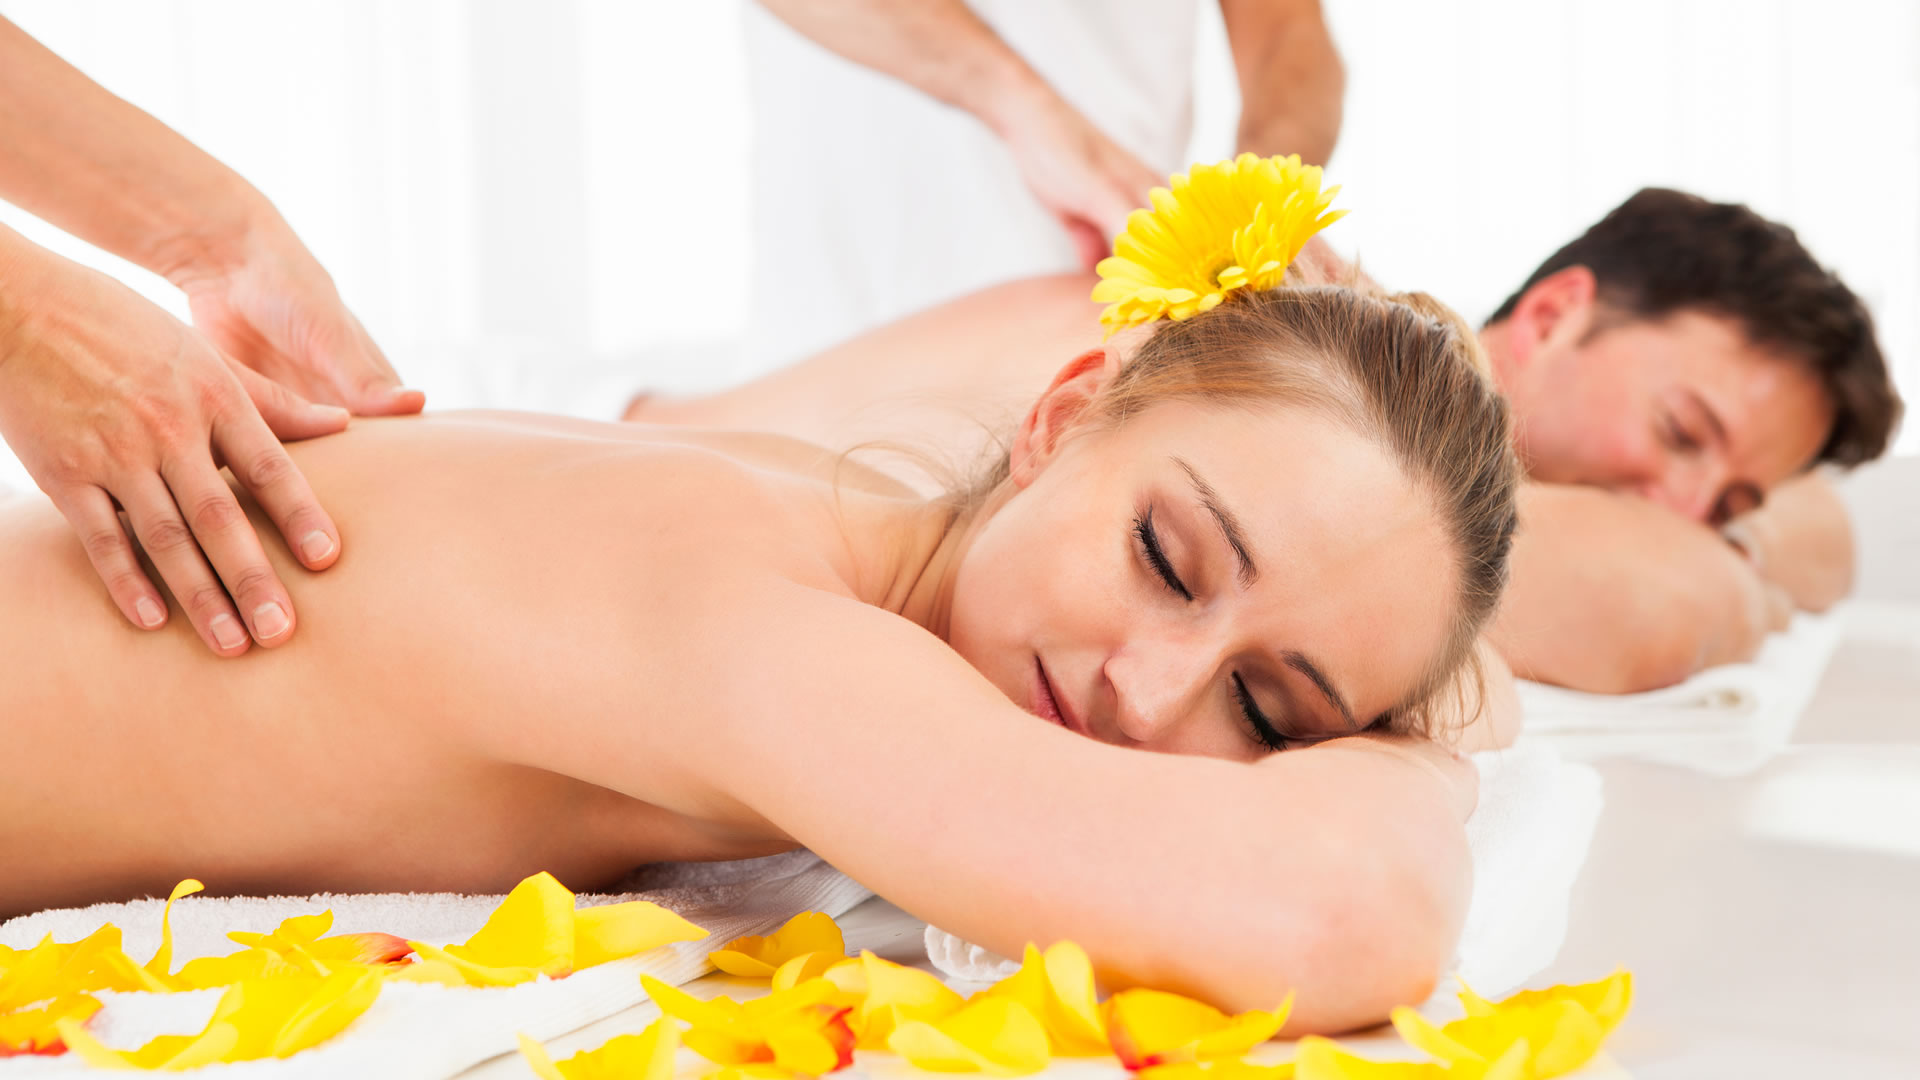 Couples Massage Los Angeles - Dtox Day Spa-8795